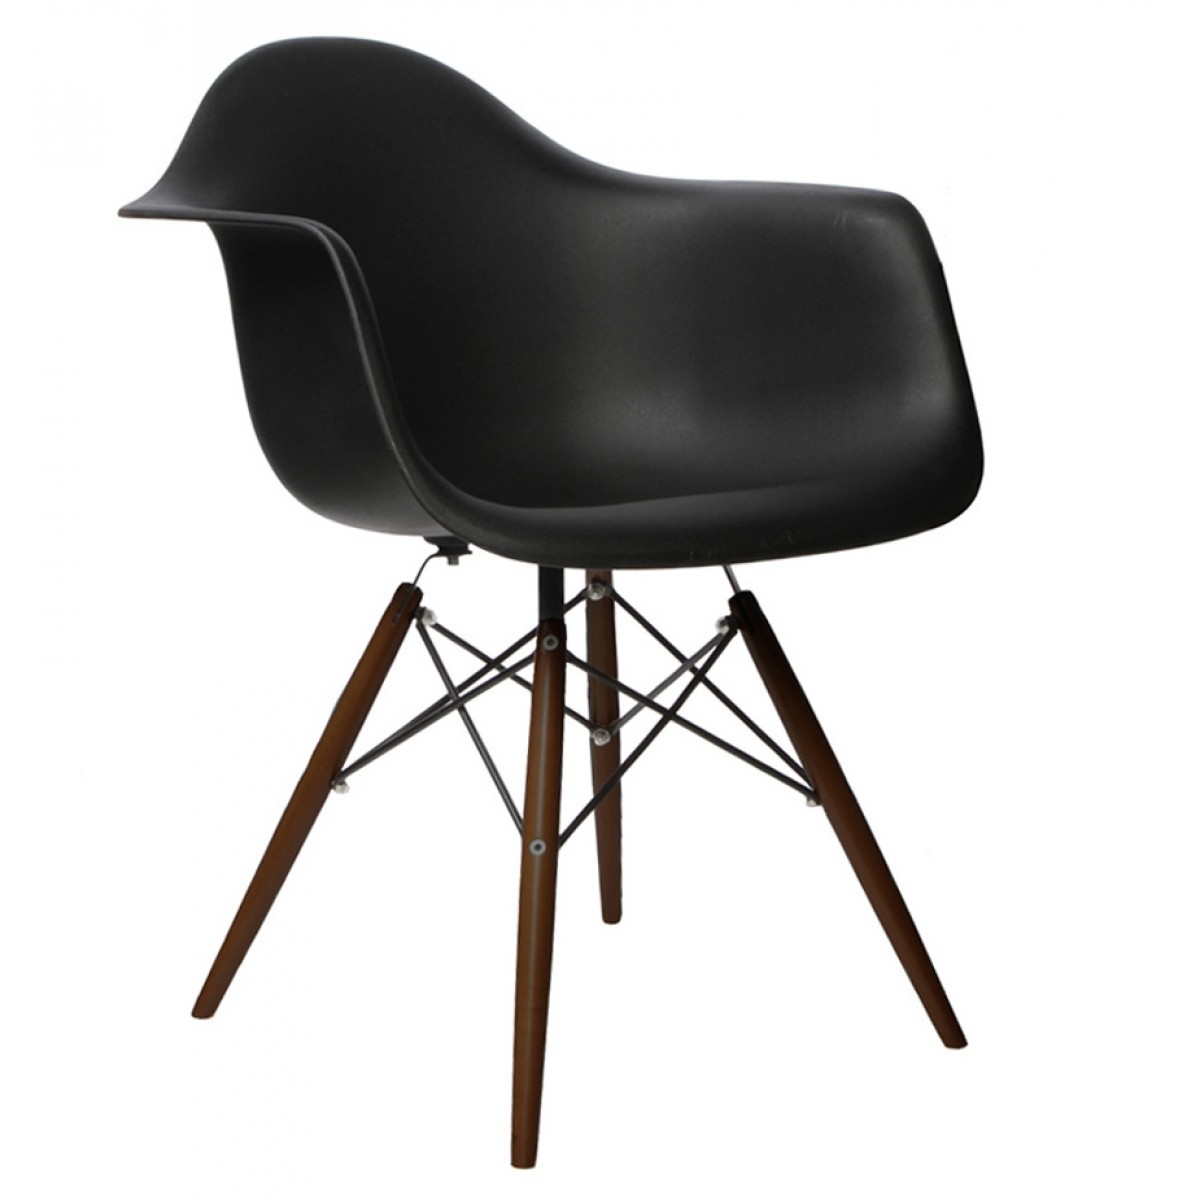 DAW Molded Black Plastic Dining Armchair with